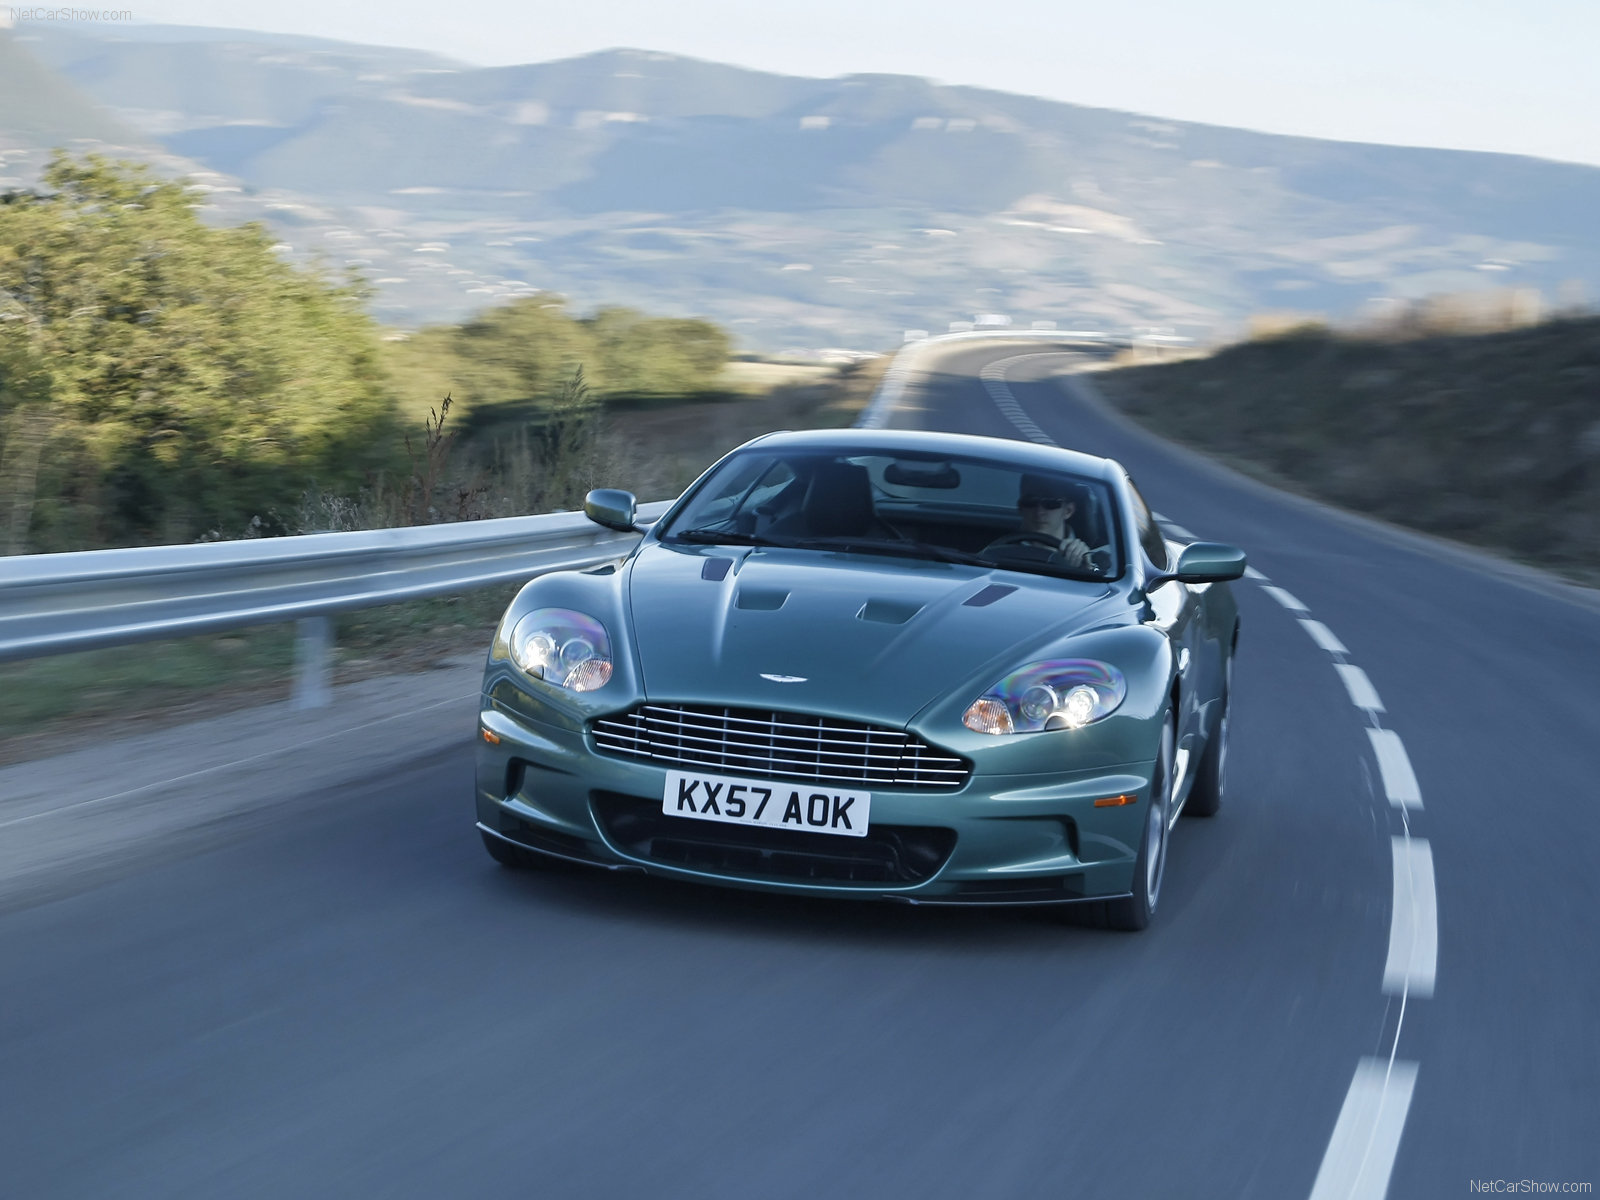 2018 Aston Martin DBS Racing Green photo - 3